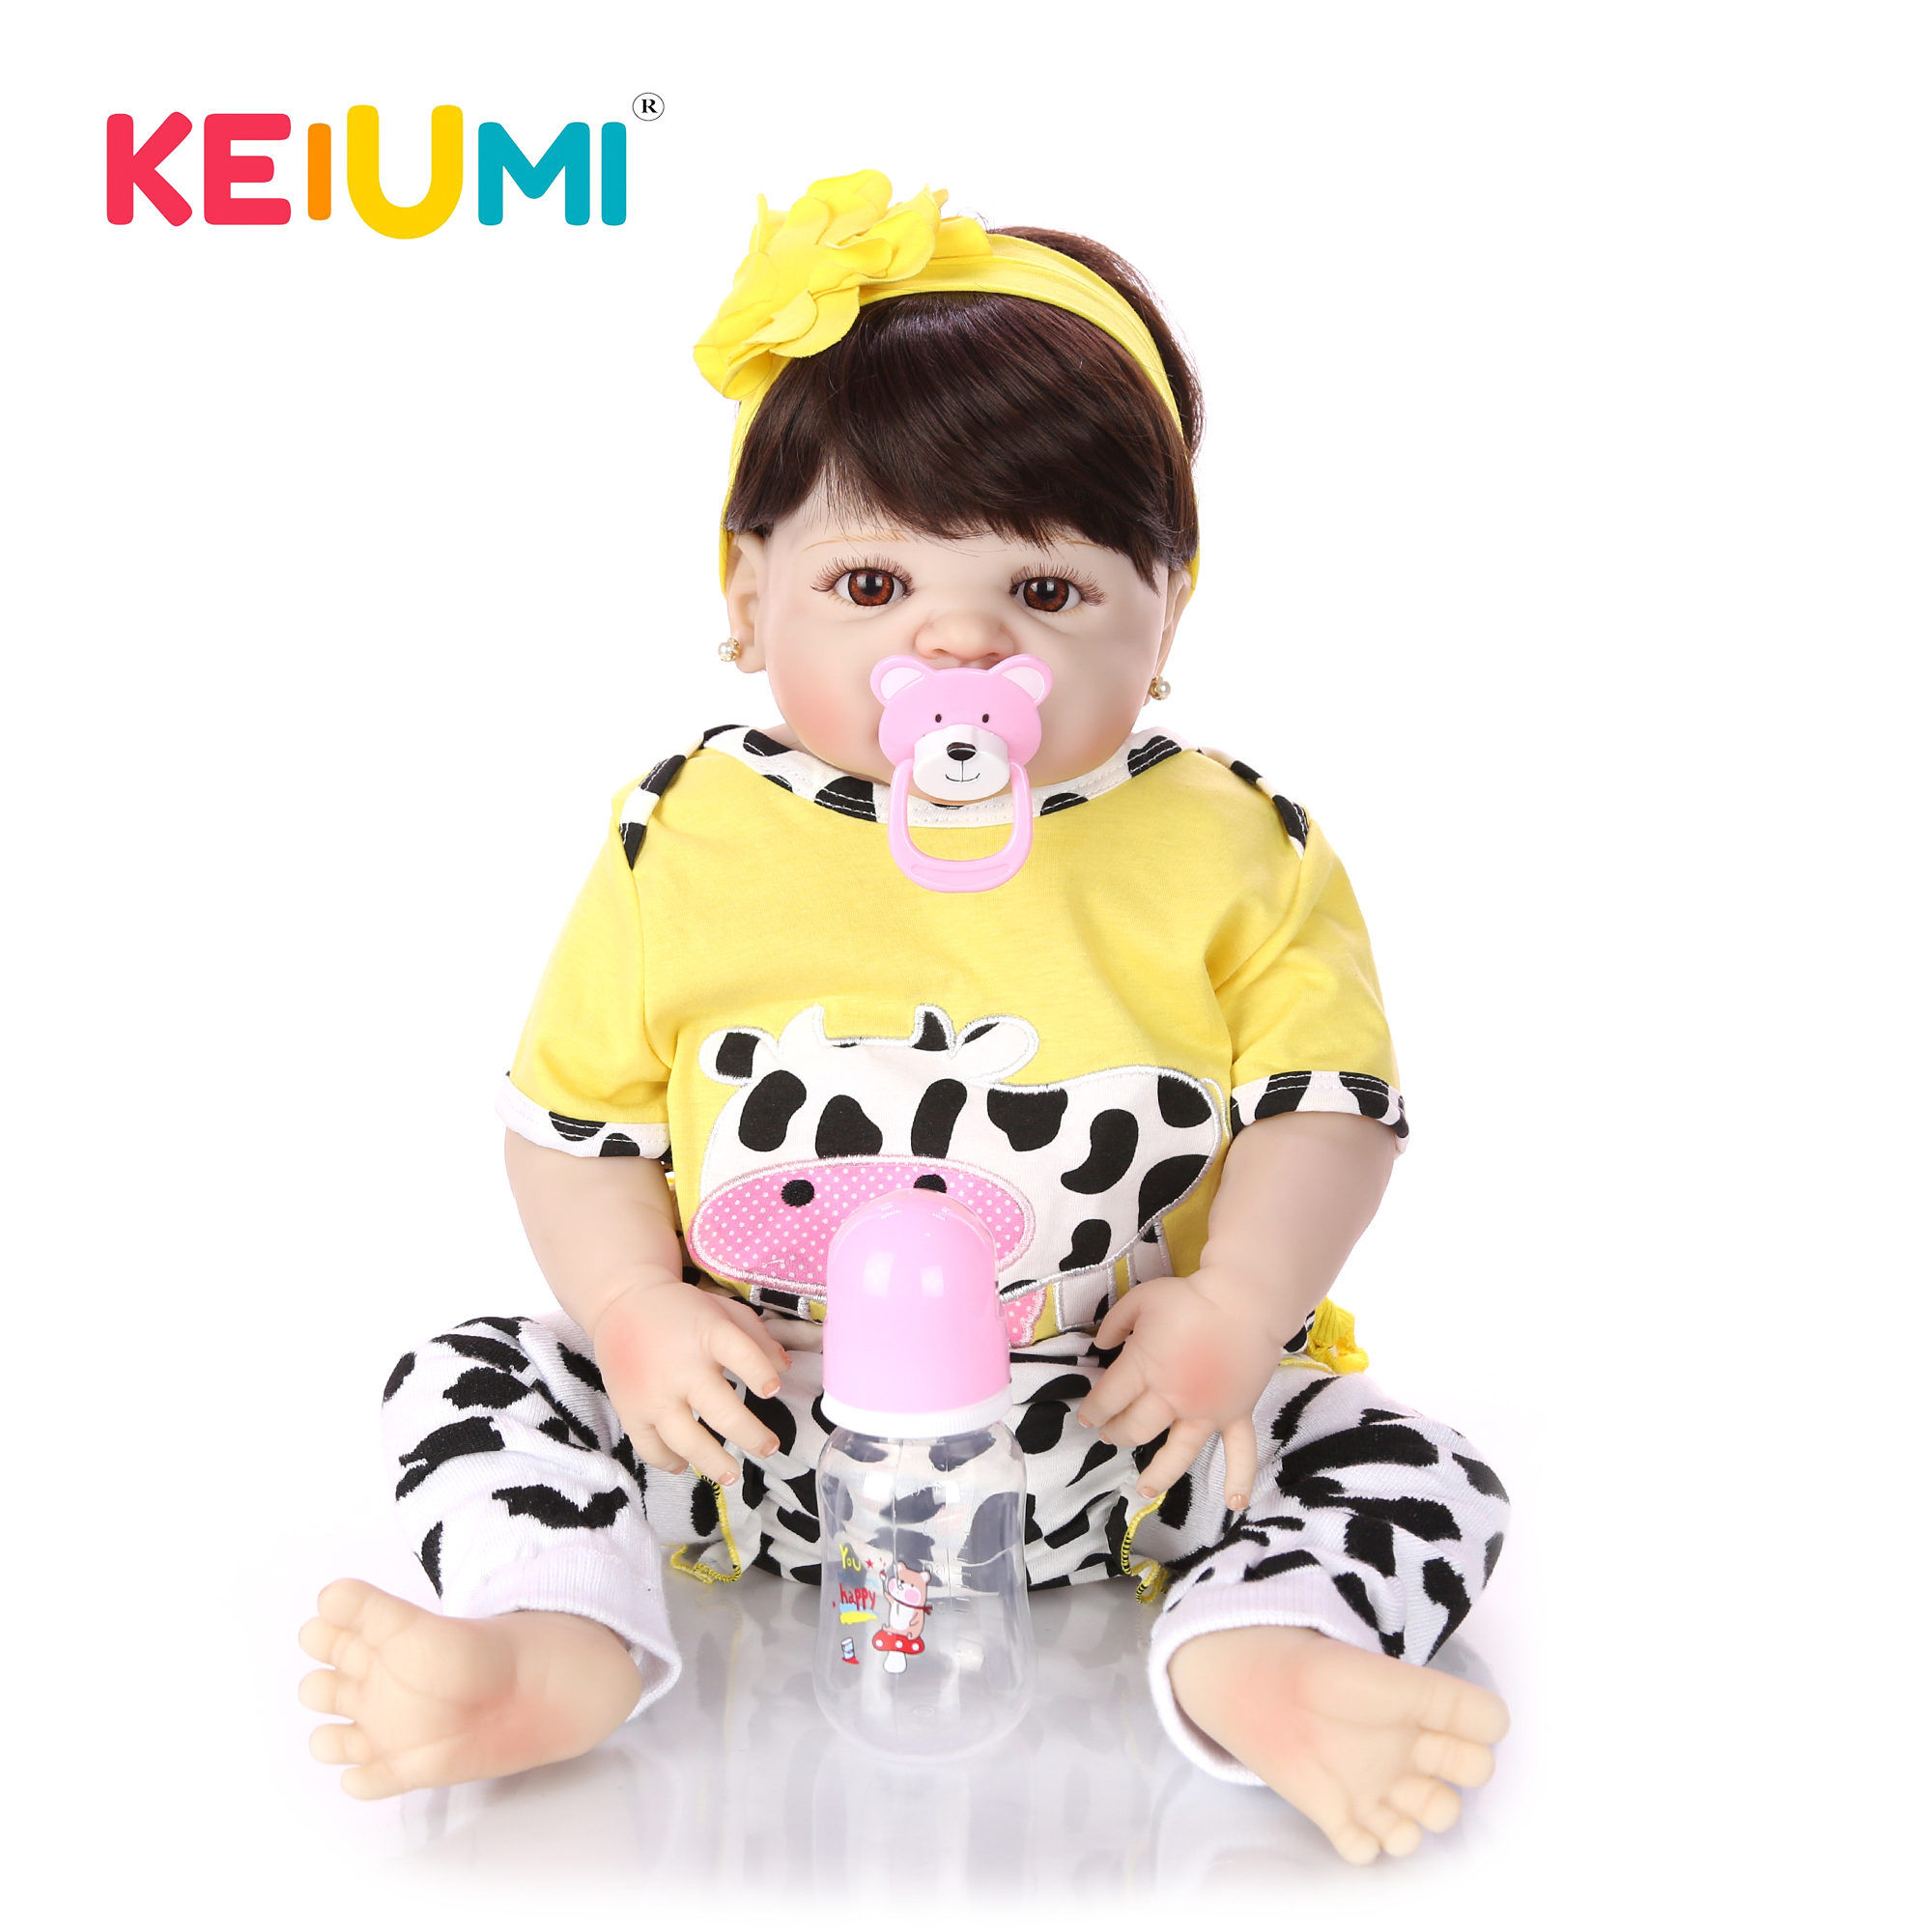 Collectible 23 57 cm Reborn Baby Dolls Full Vinyl Body So Truly Like Girl Alive Doll